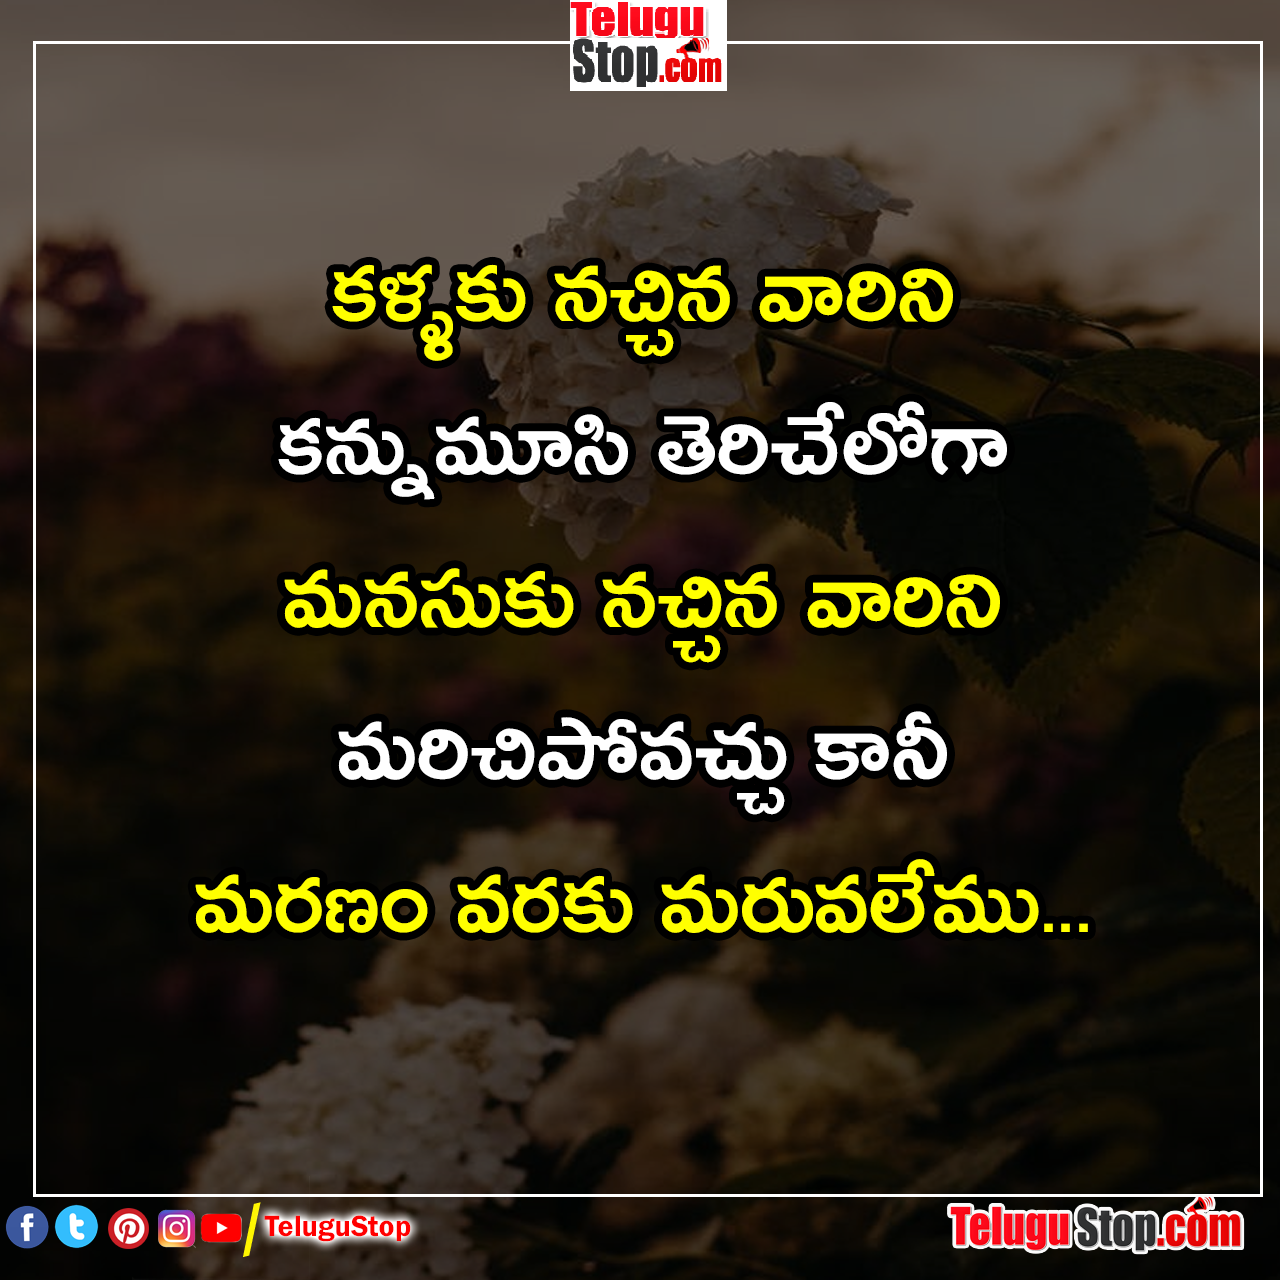 Heart touching relationship related quotes in telugu inspirational quotes